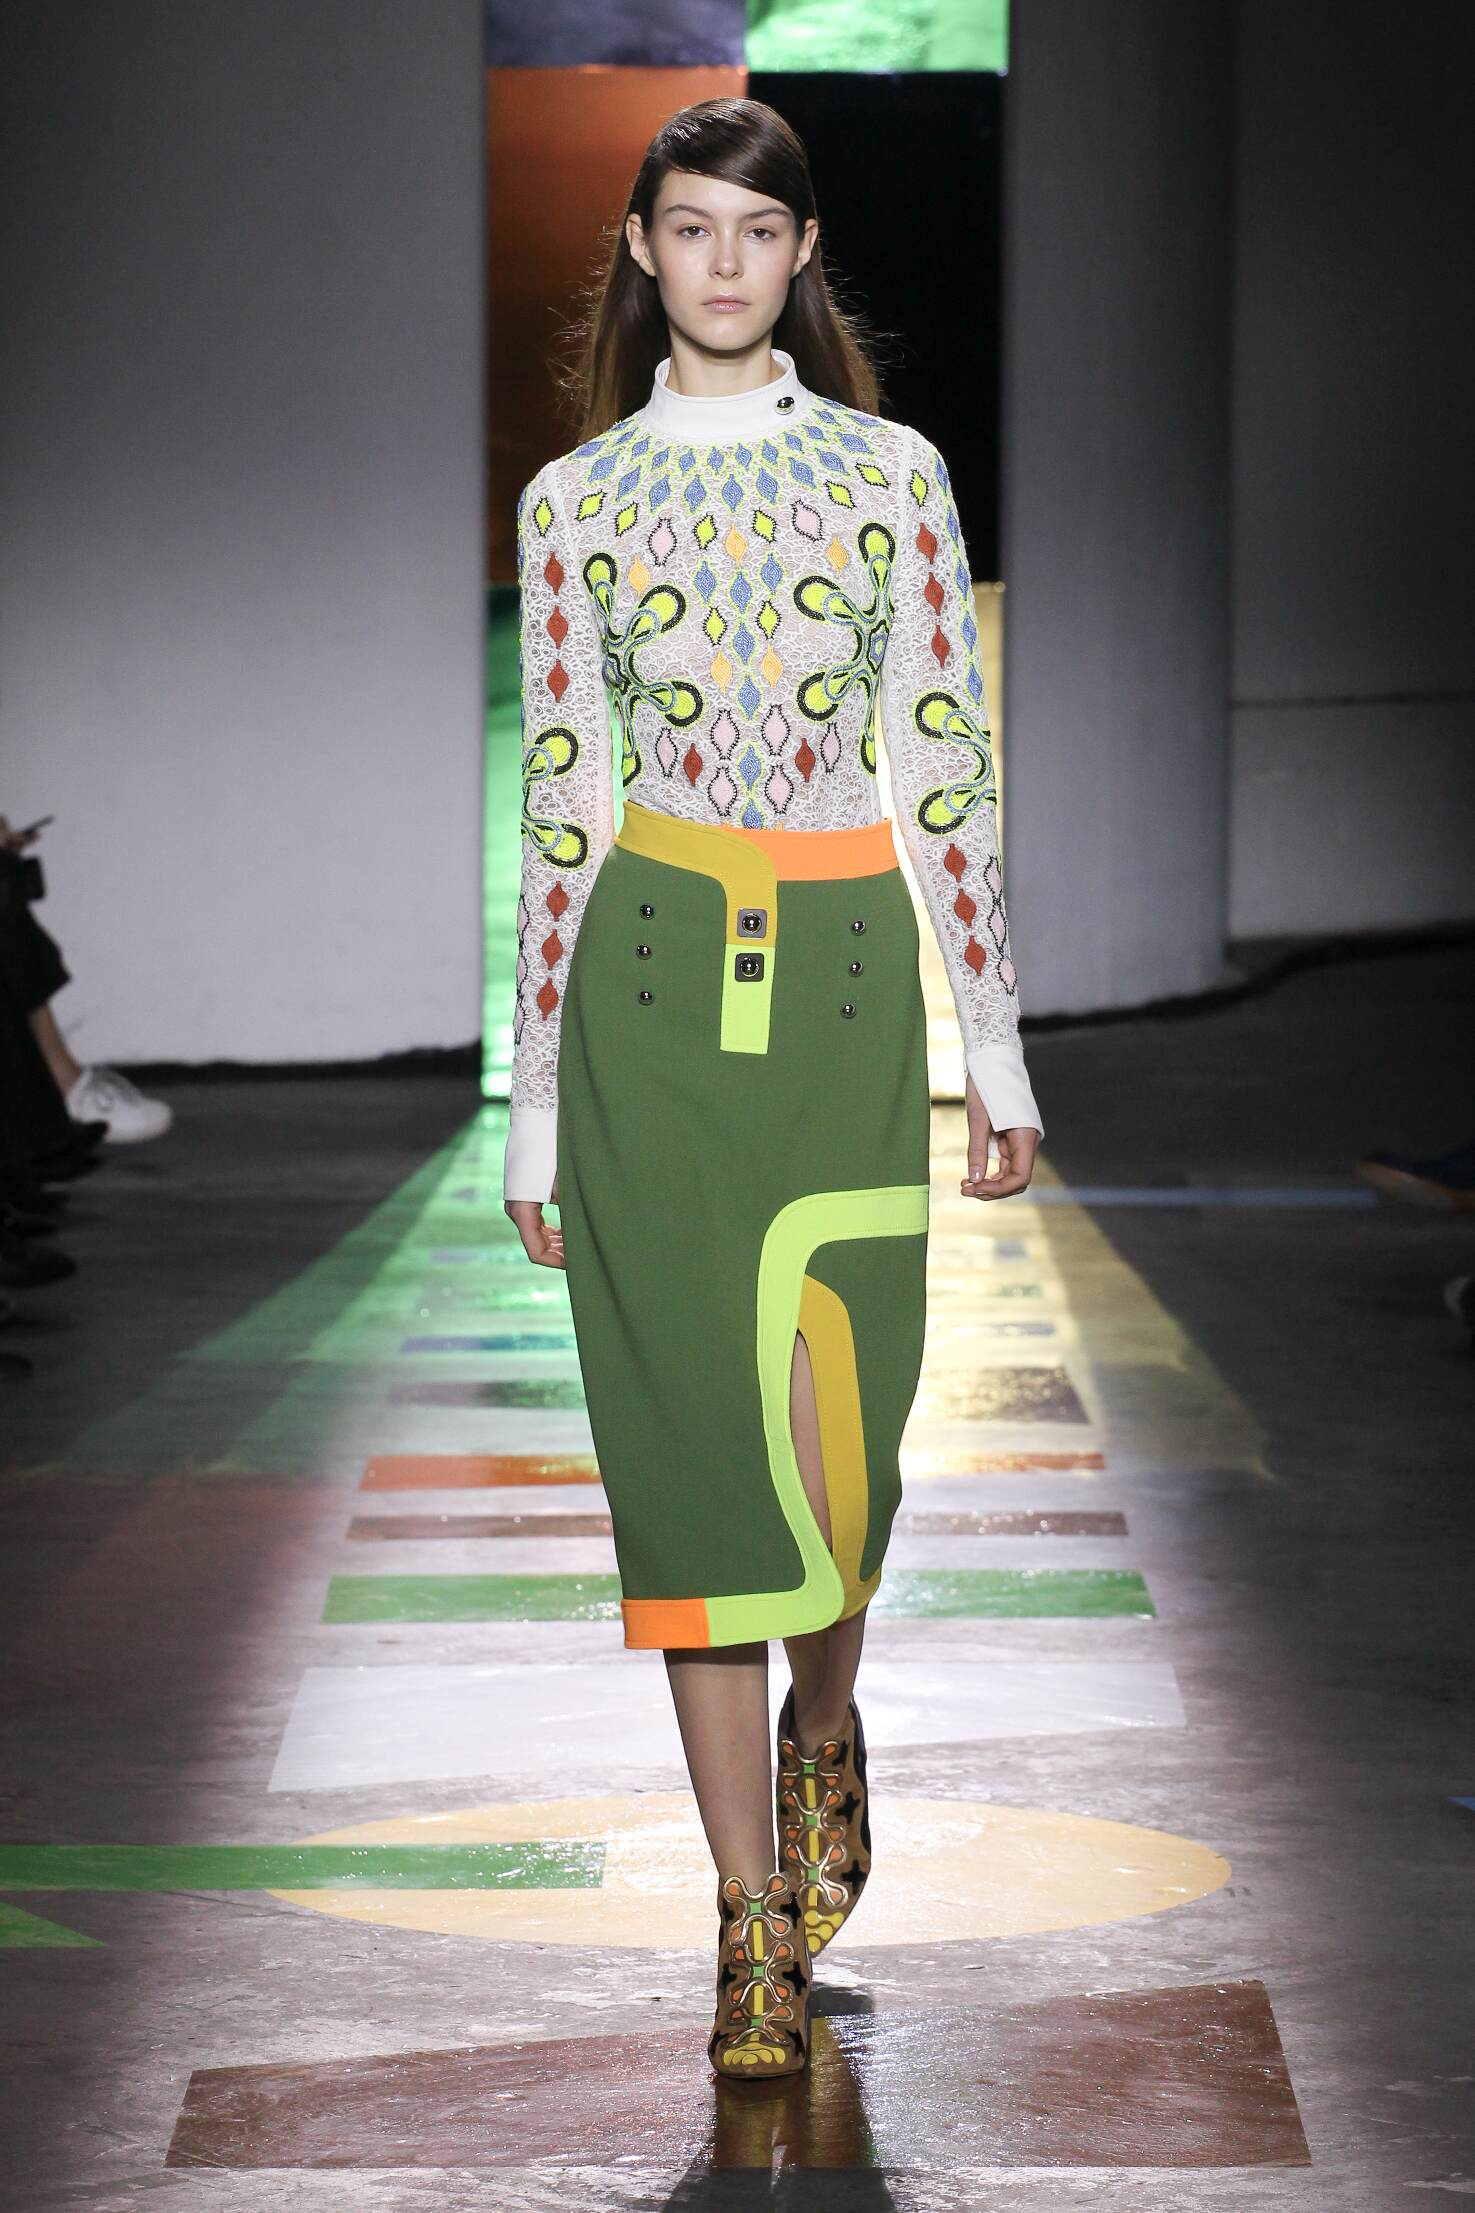 Runway Peter Pilotto Fall Winter 2015 16 Women's Collection London Fashion Week